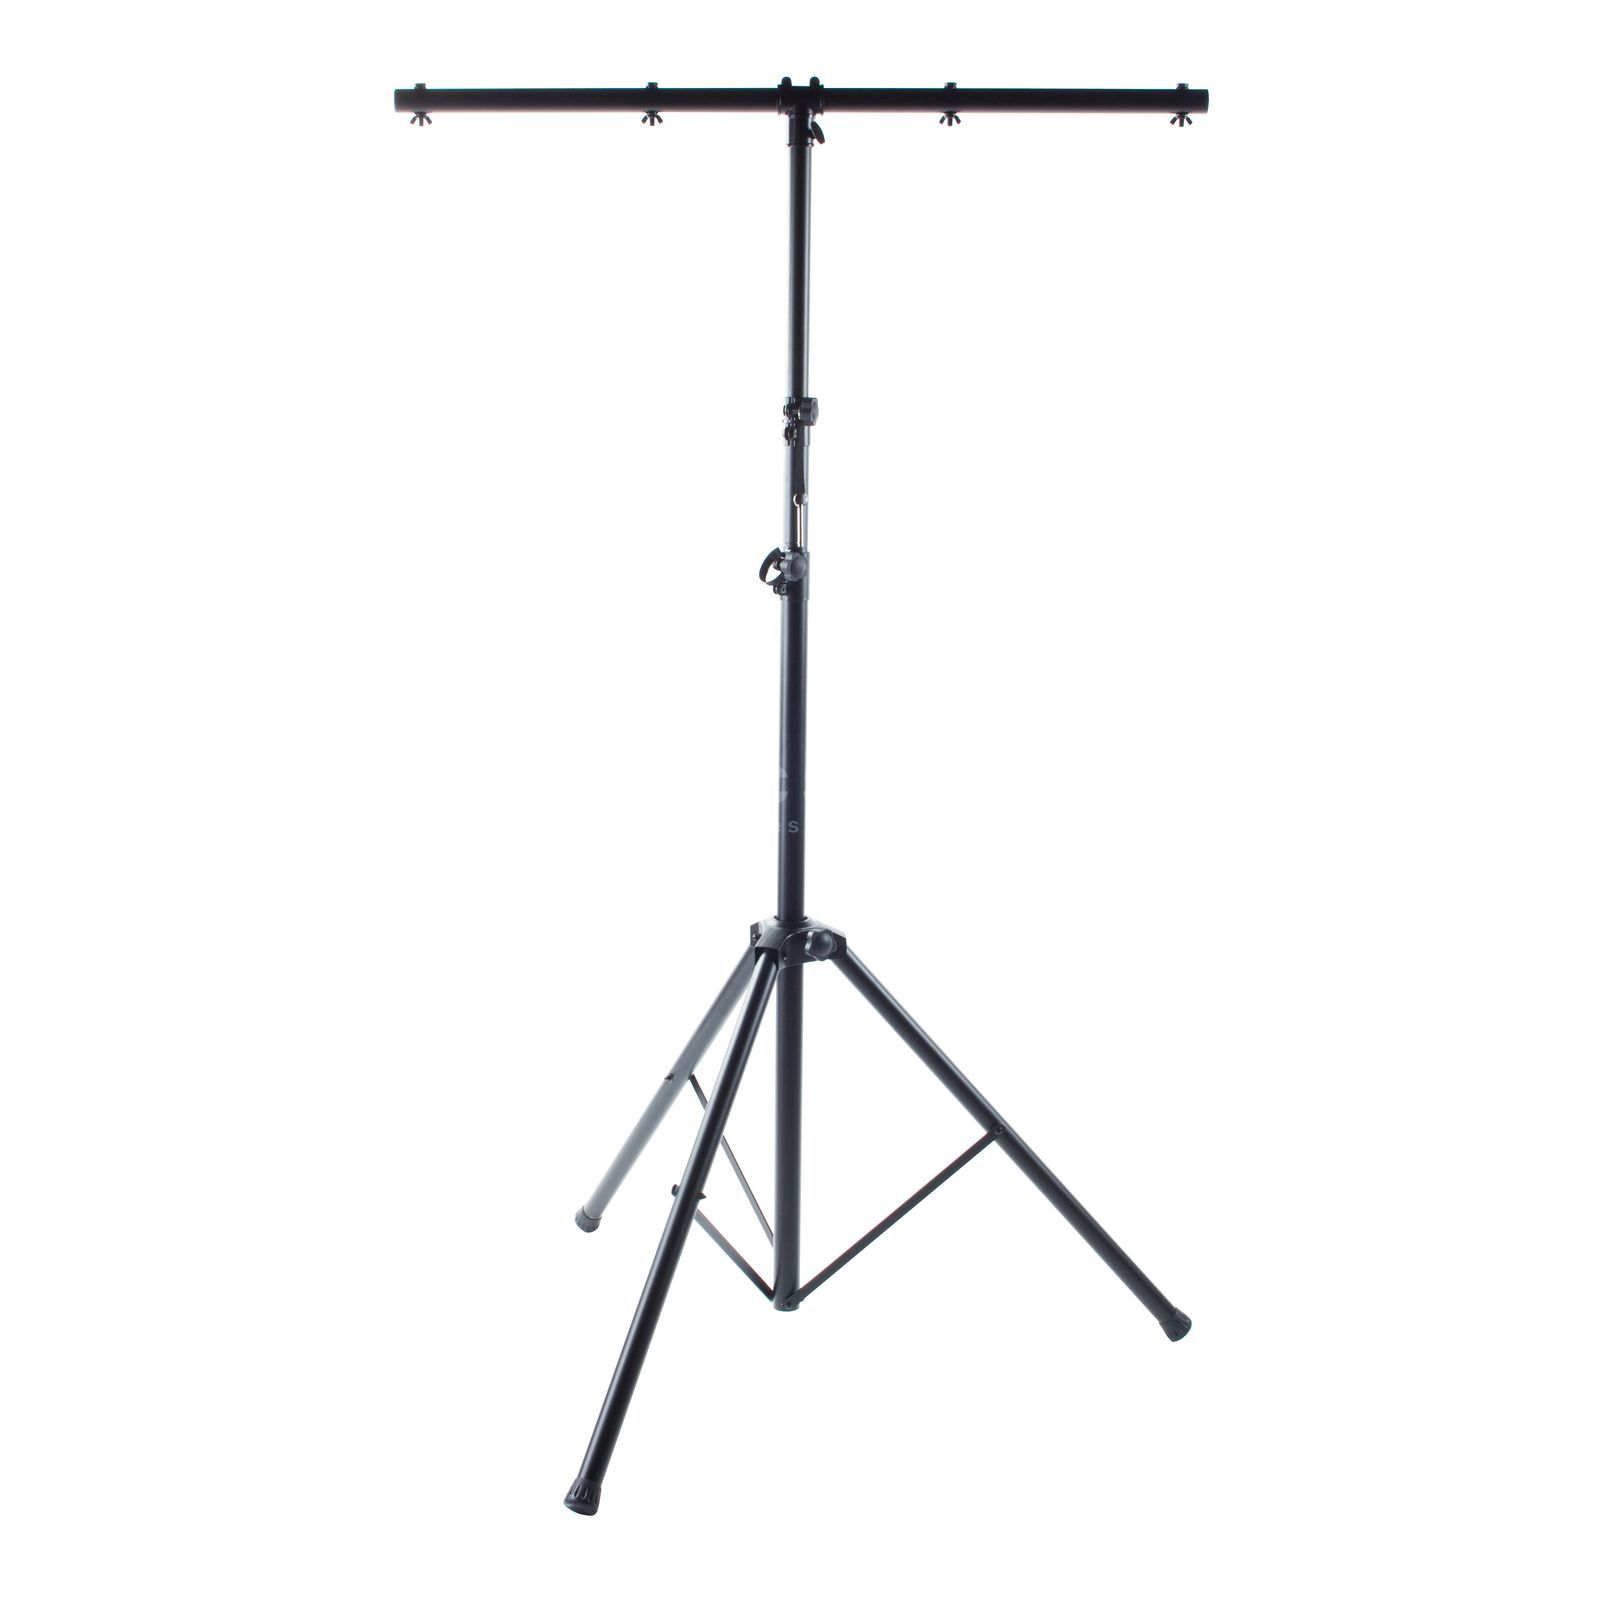 lightmaXX LS-20 Steel DJ Lighting Stand 1.45-3.25 Metres incl. T-BAR Produktbillede